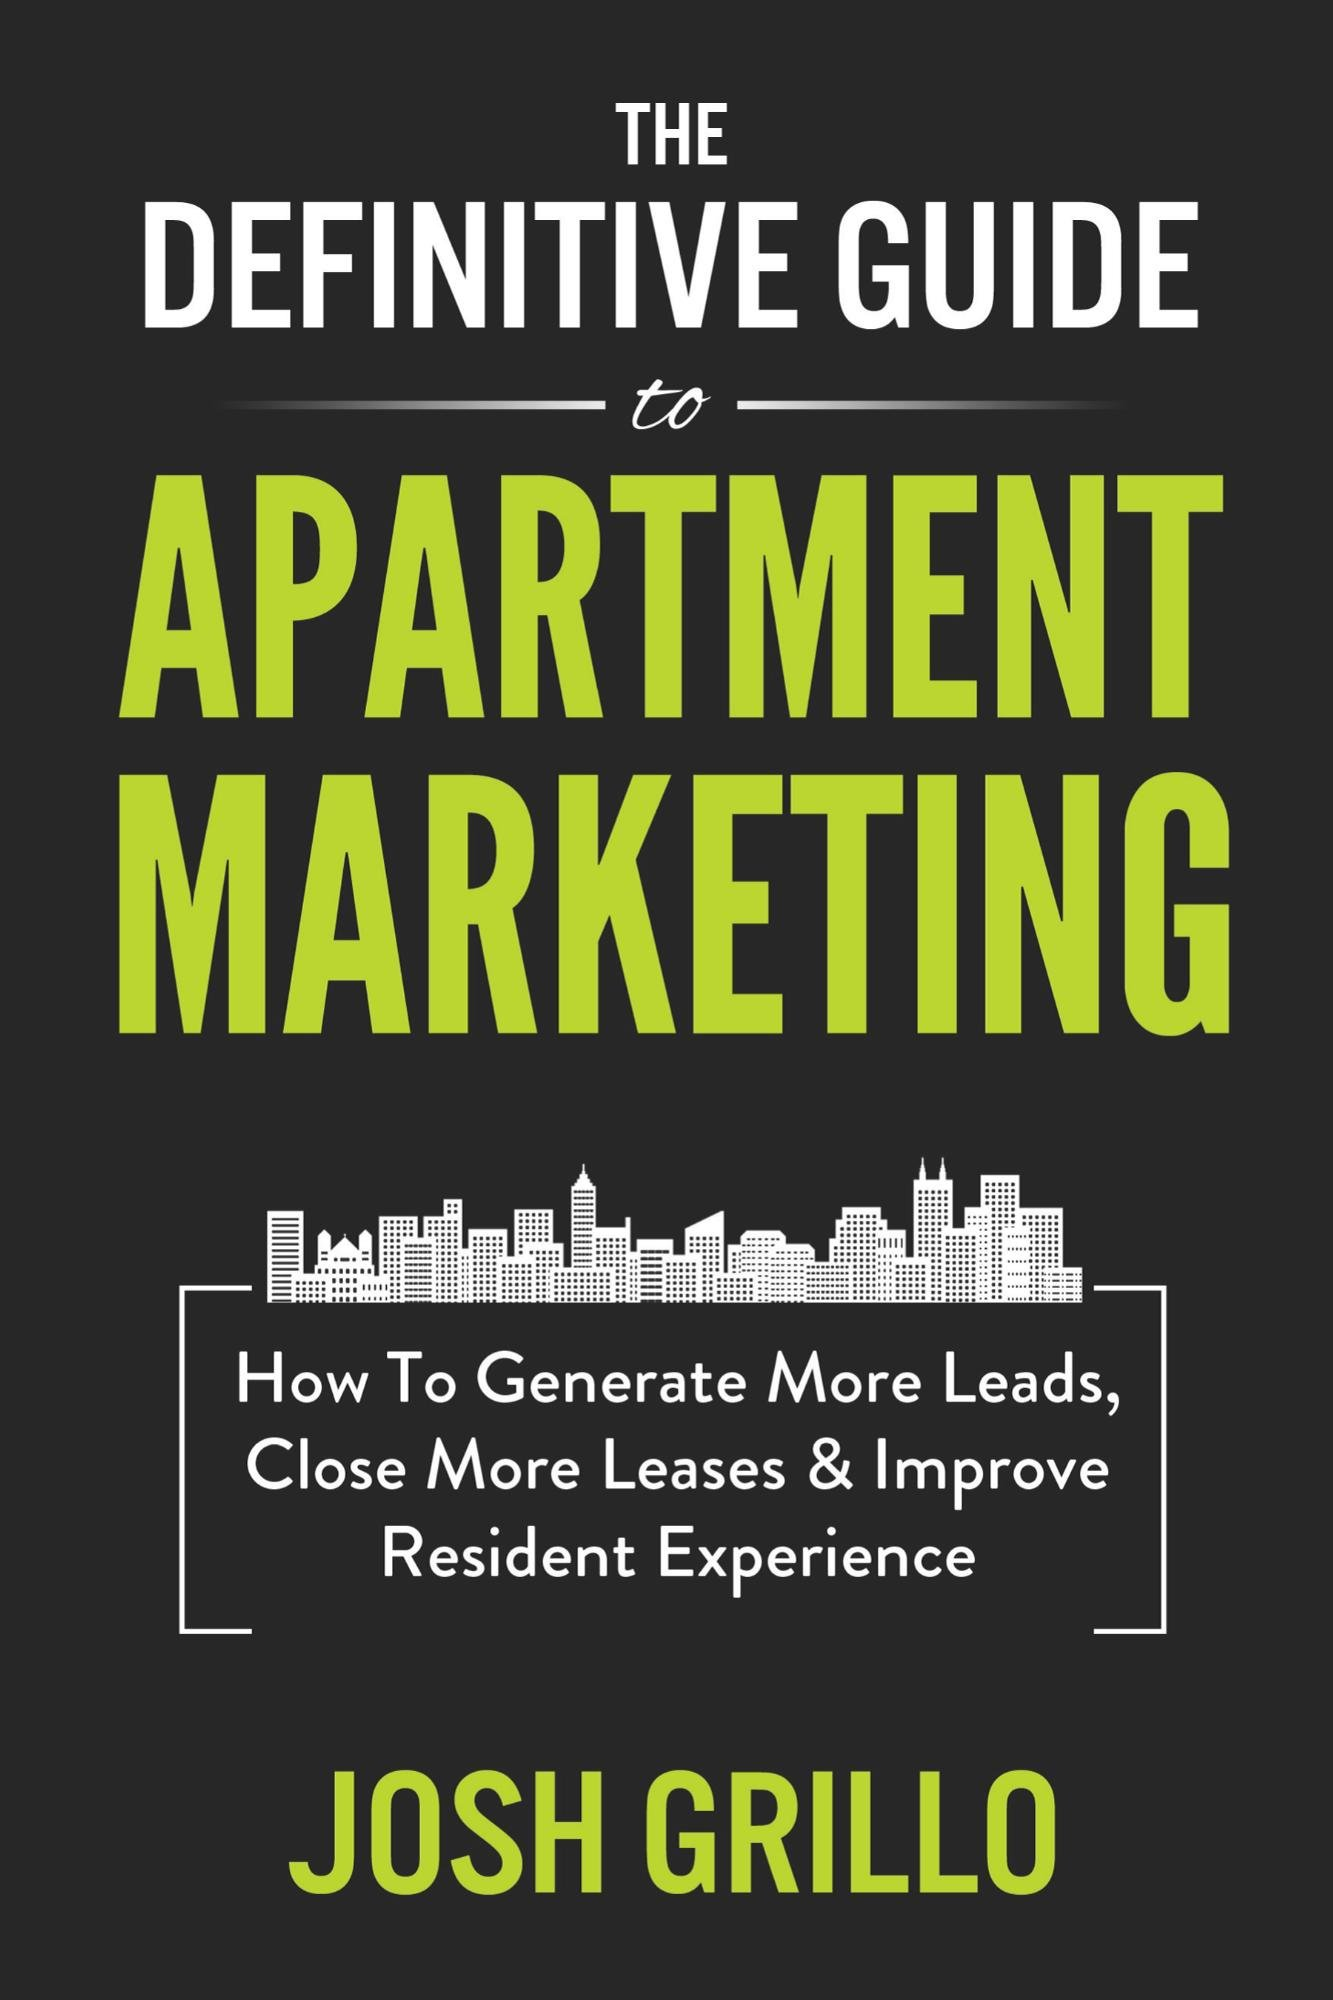 The Definitive Guide To Apartment Marketing: How To Generate More Leads, Leases & Improve Resident Experience